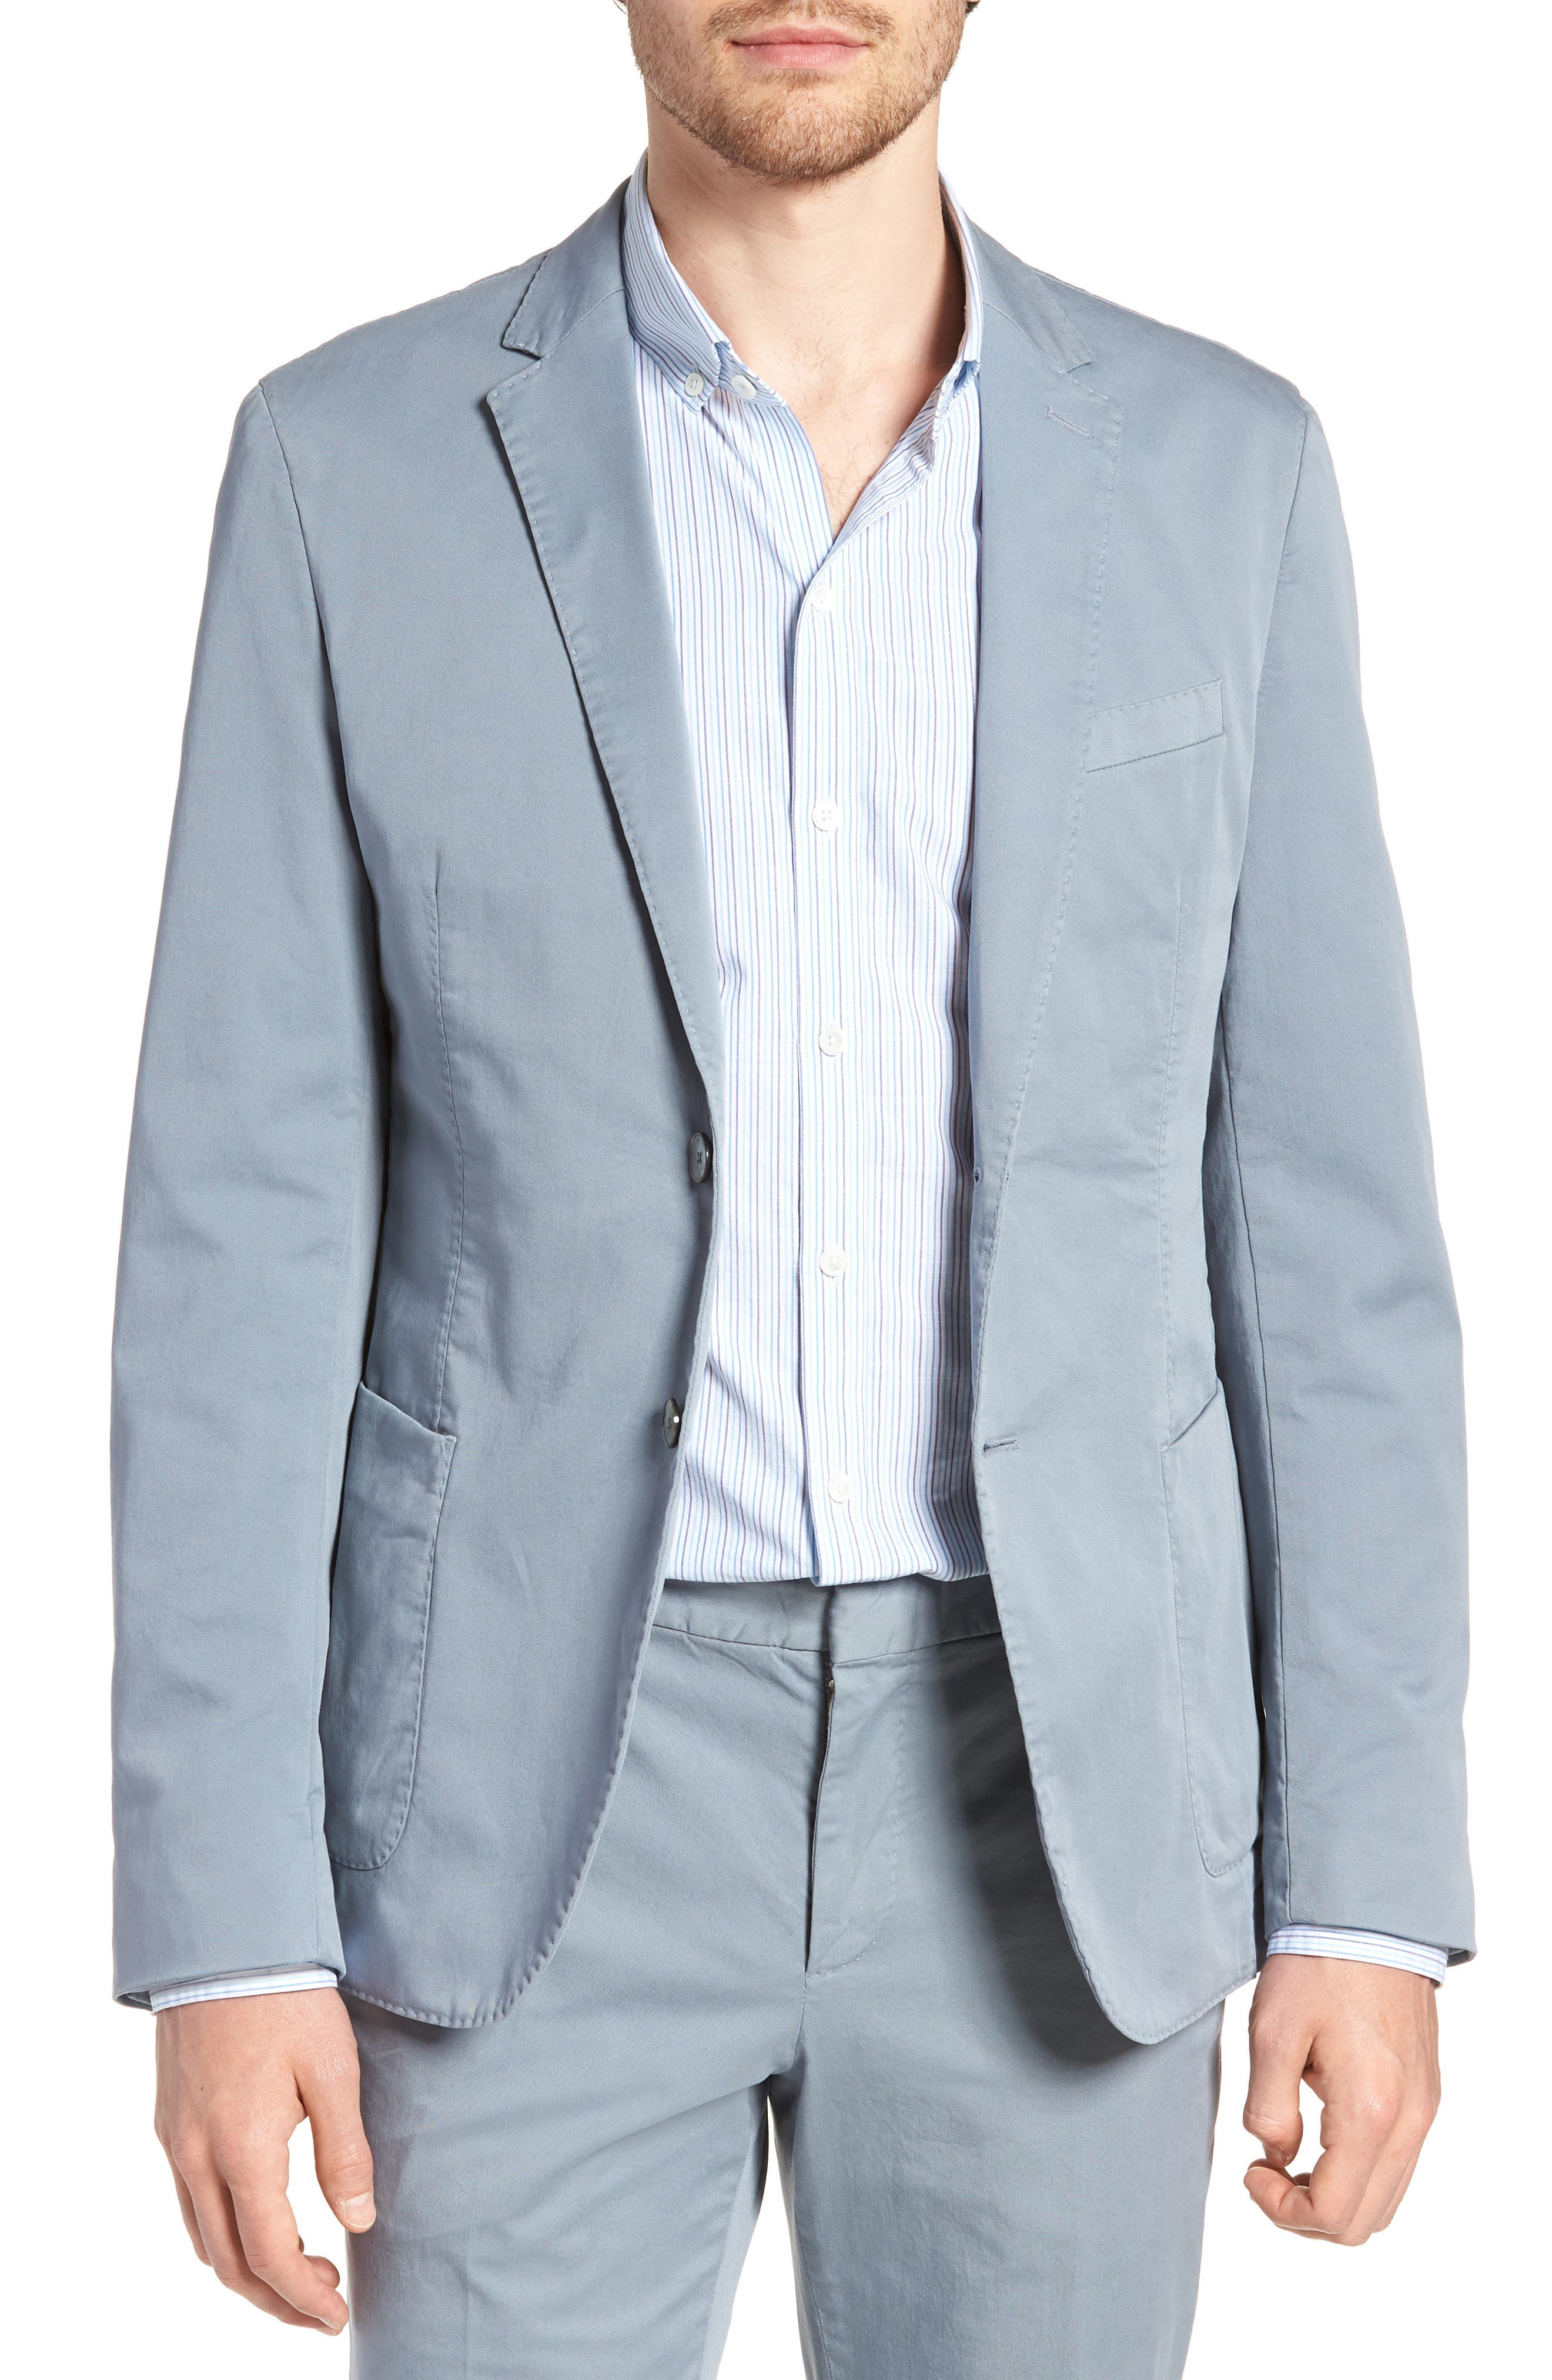 Hanry-D Trim Fit Stretch Cotton Blazer,                             Main thumbnail 1, color,                             Blue